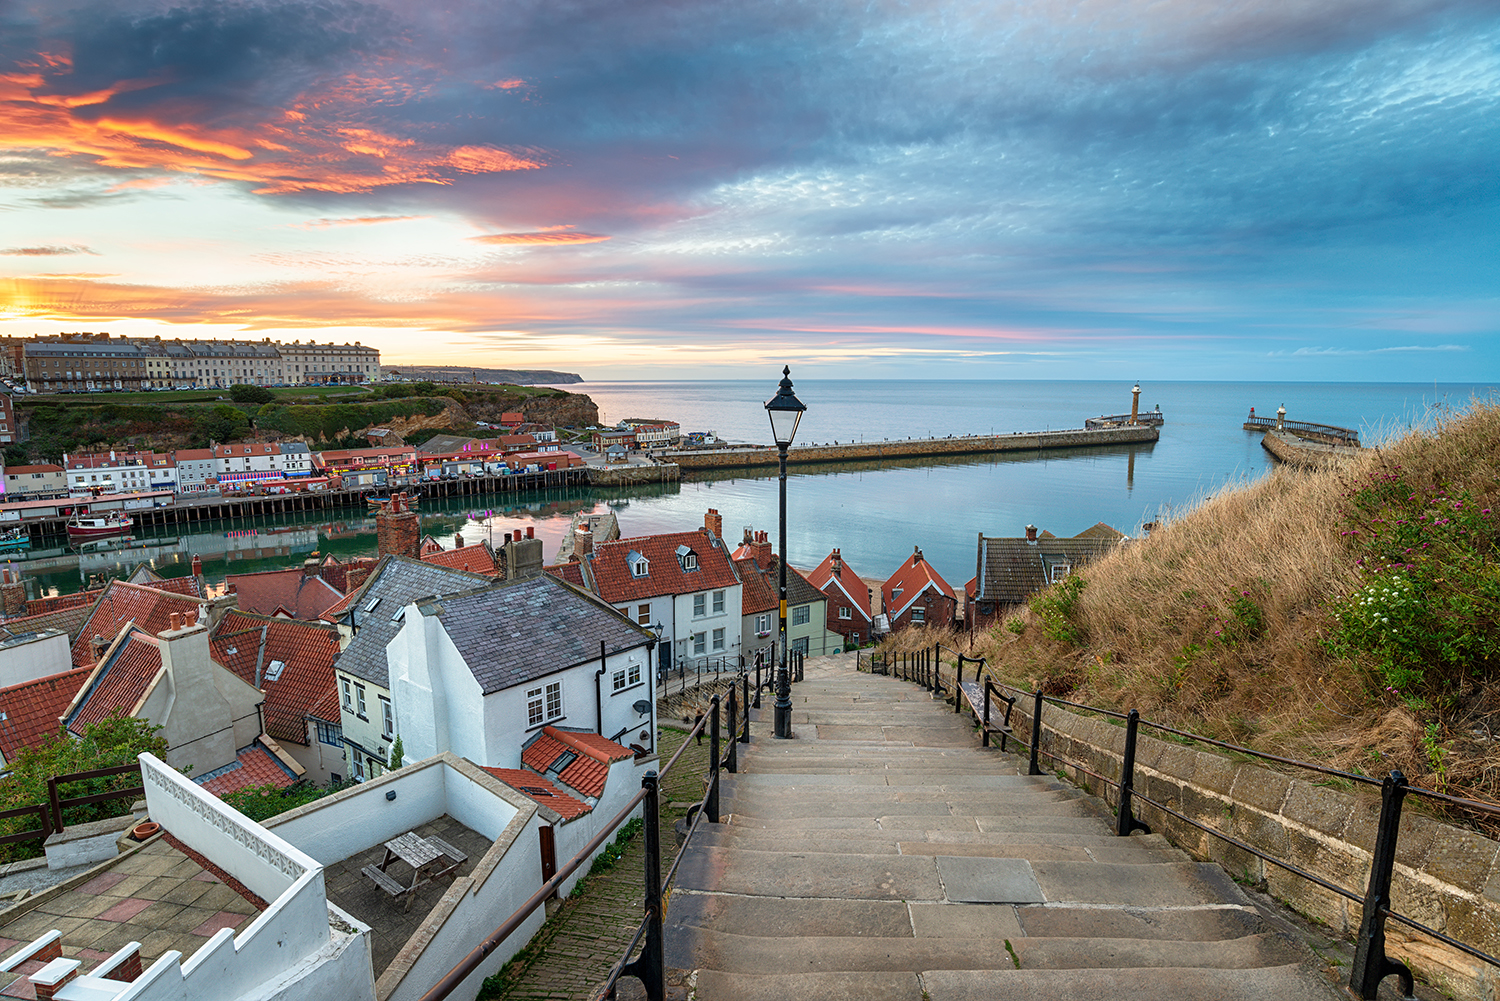 sun setting over Whitby harbour